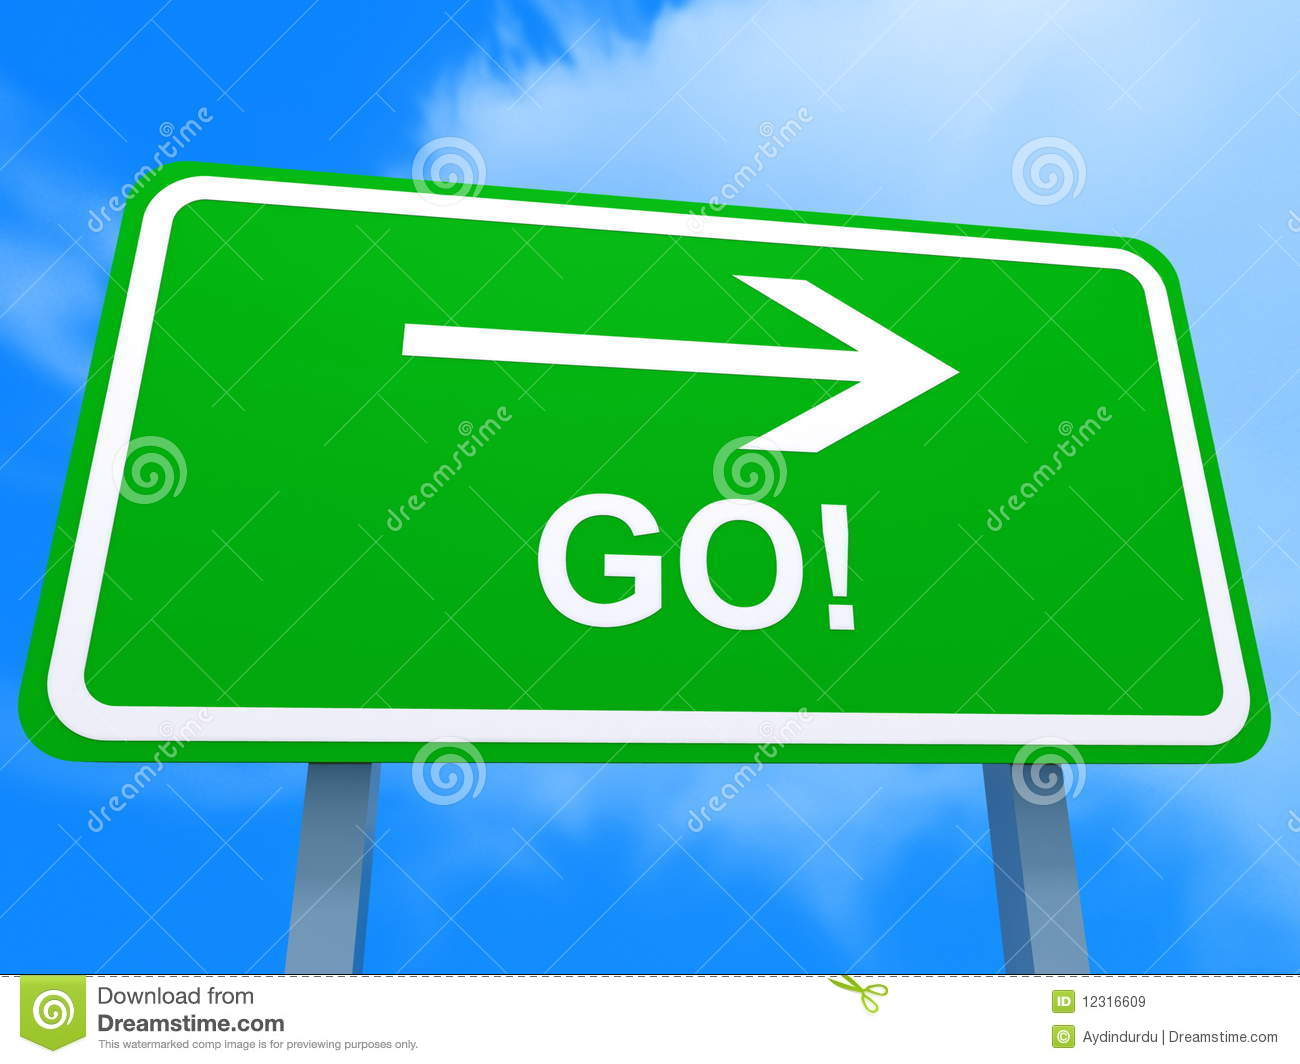 go traffic sign royalty free stock images image 12316609 relax clip art png relax clipart images